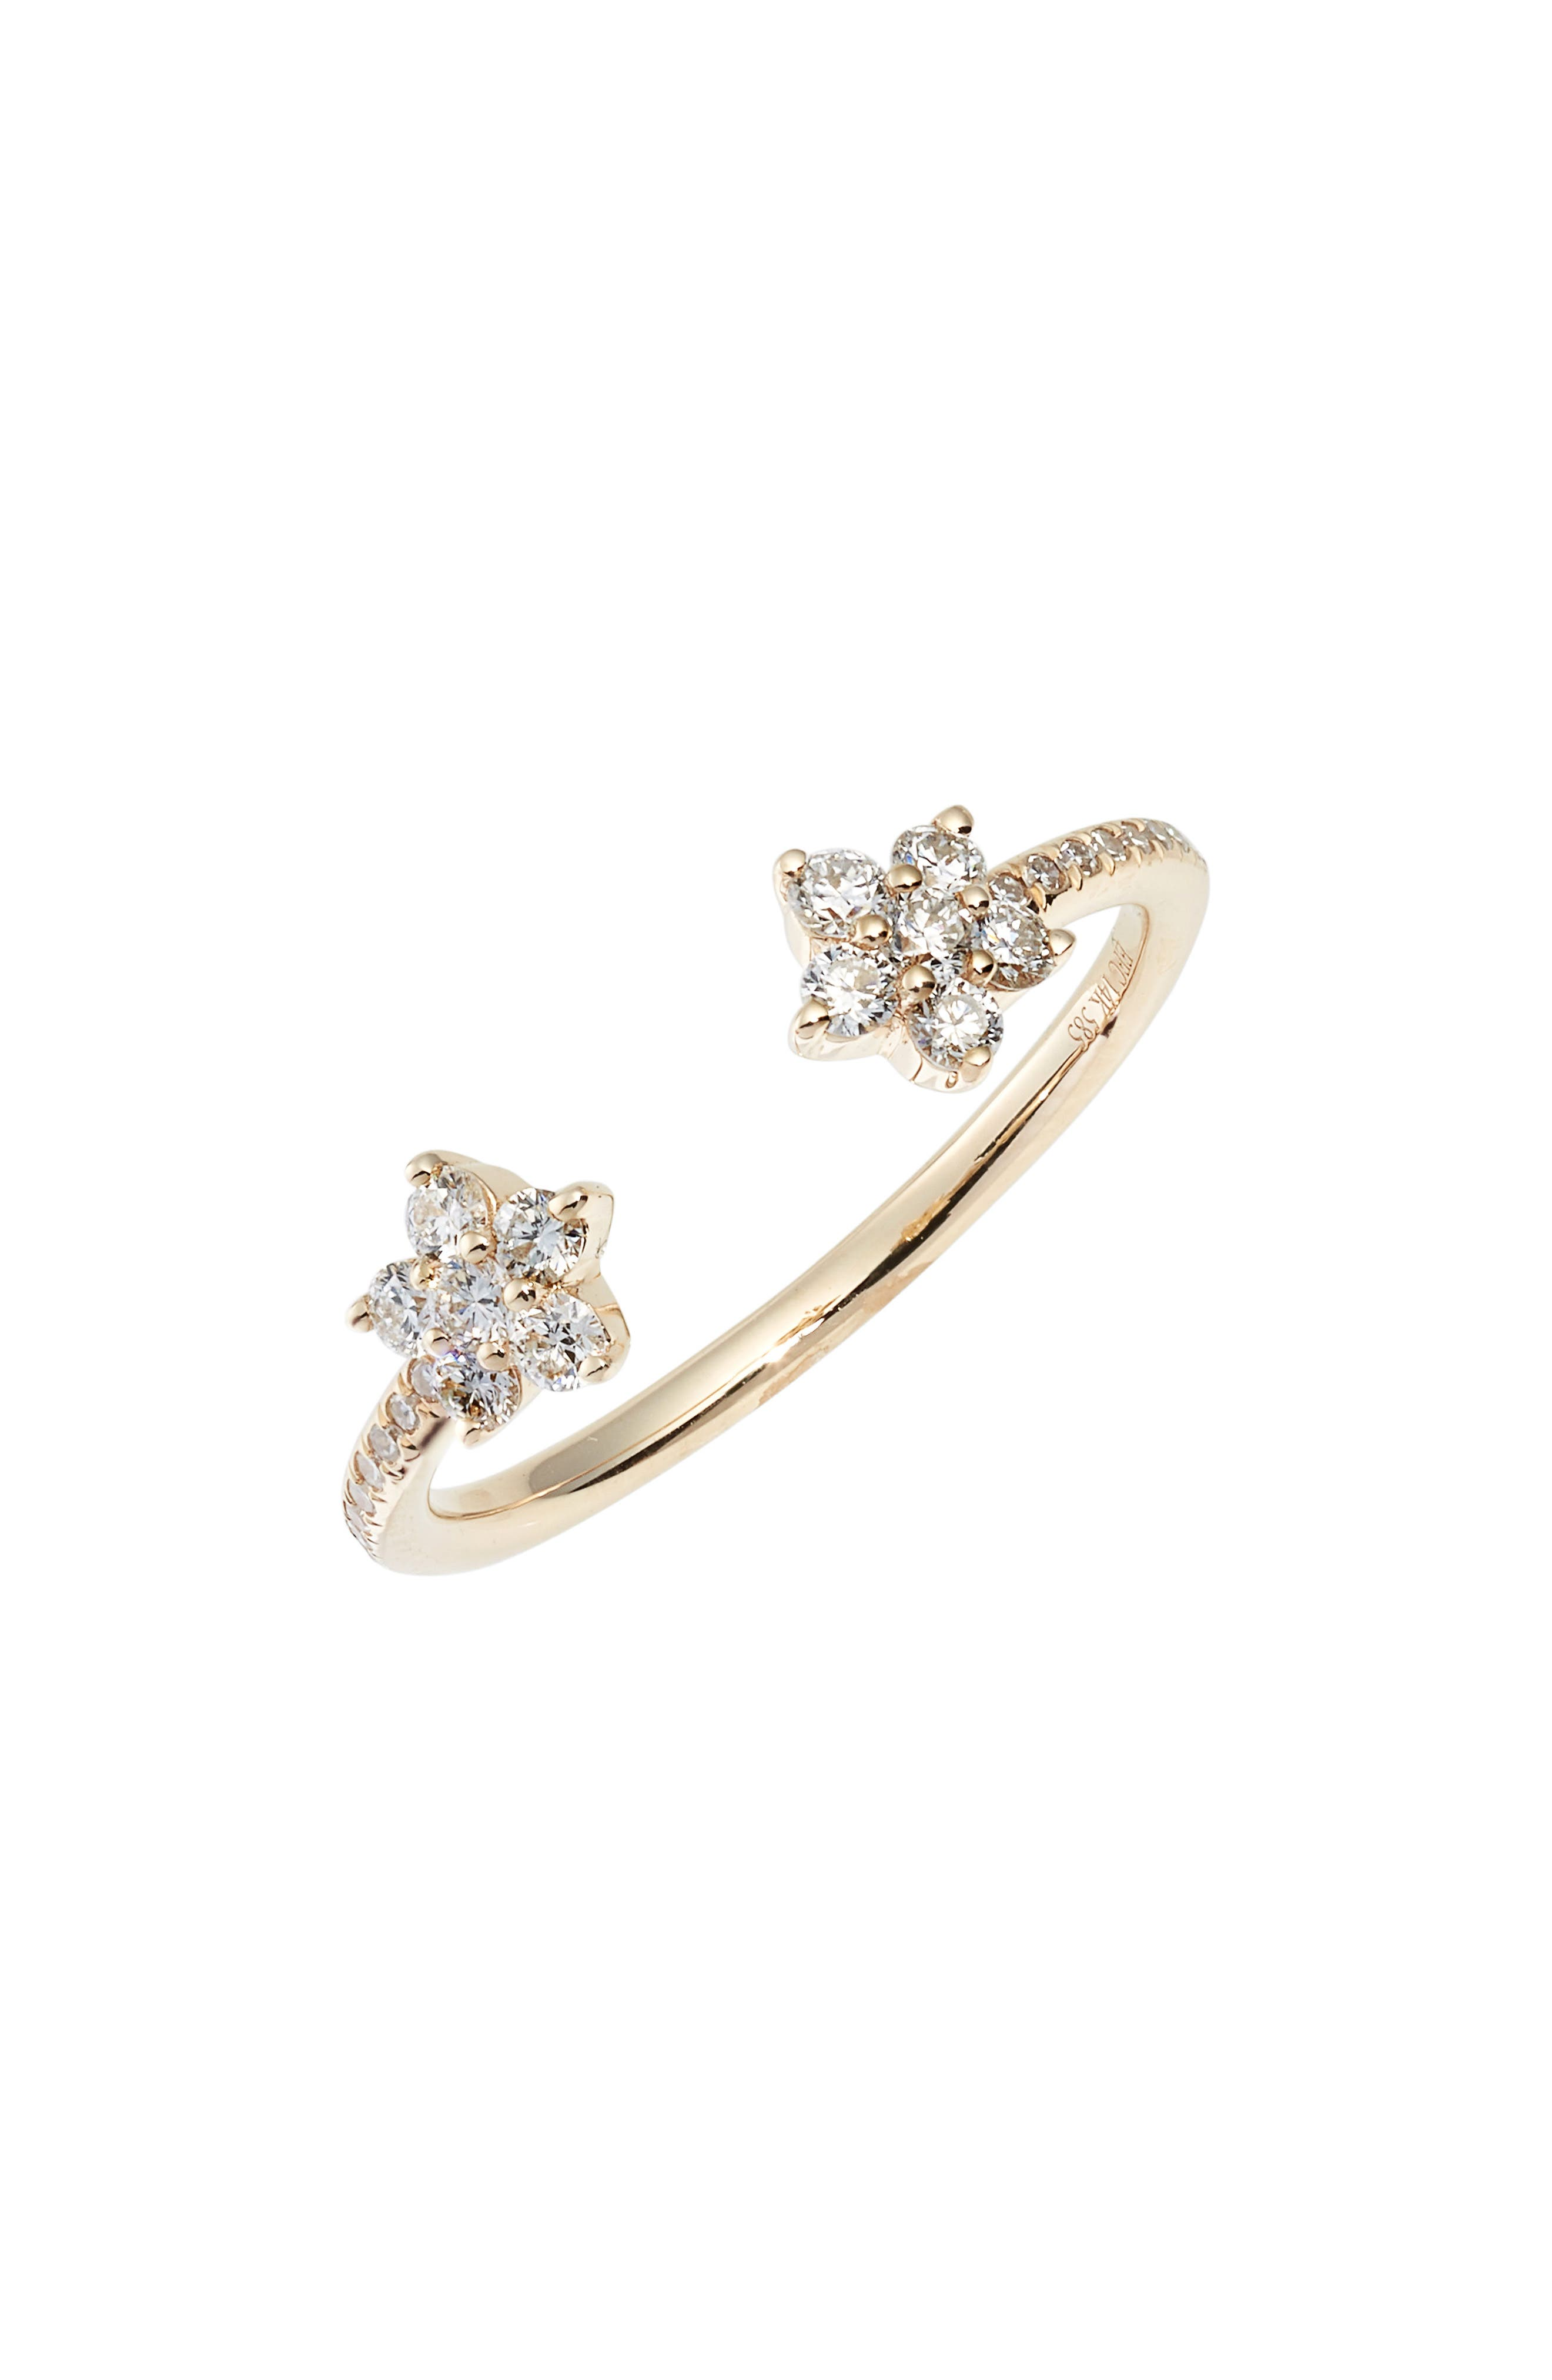 Open Diamond Flower Ring,                             Main thumbnail 1, color,                             YELLOW GOLD